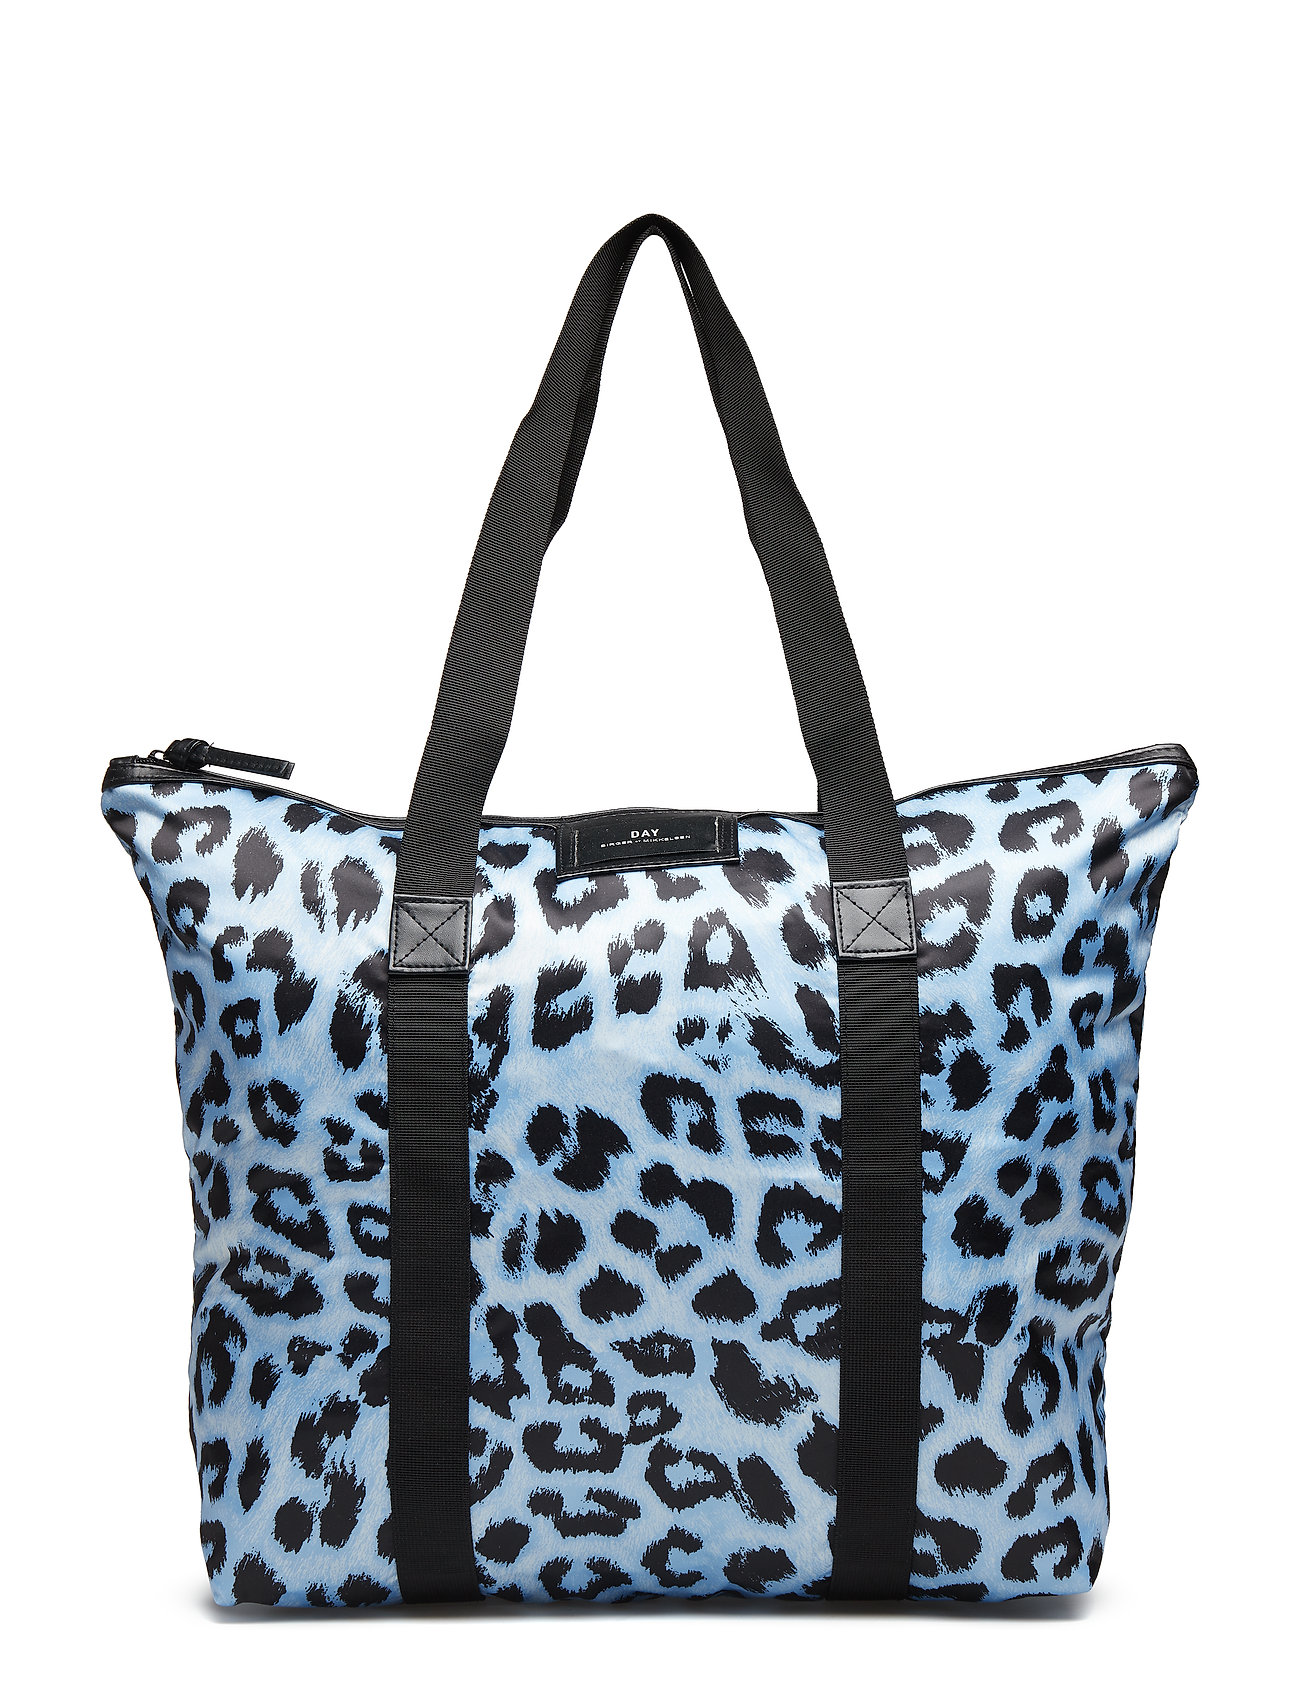 DAY et Day Gweneth P Blue Leo Bag